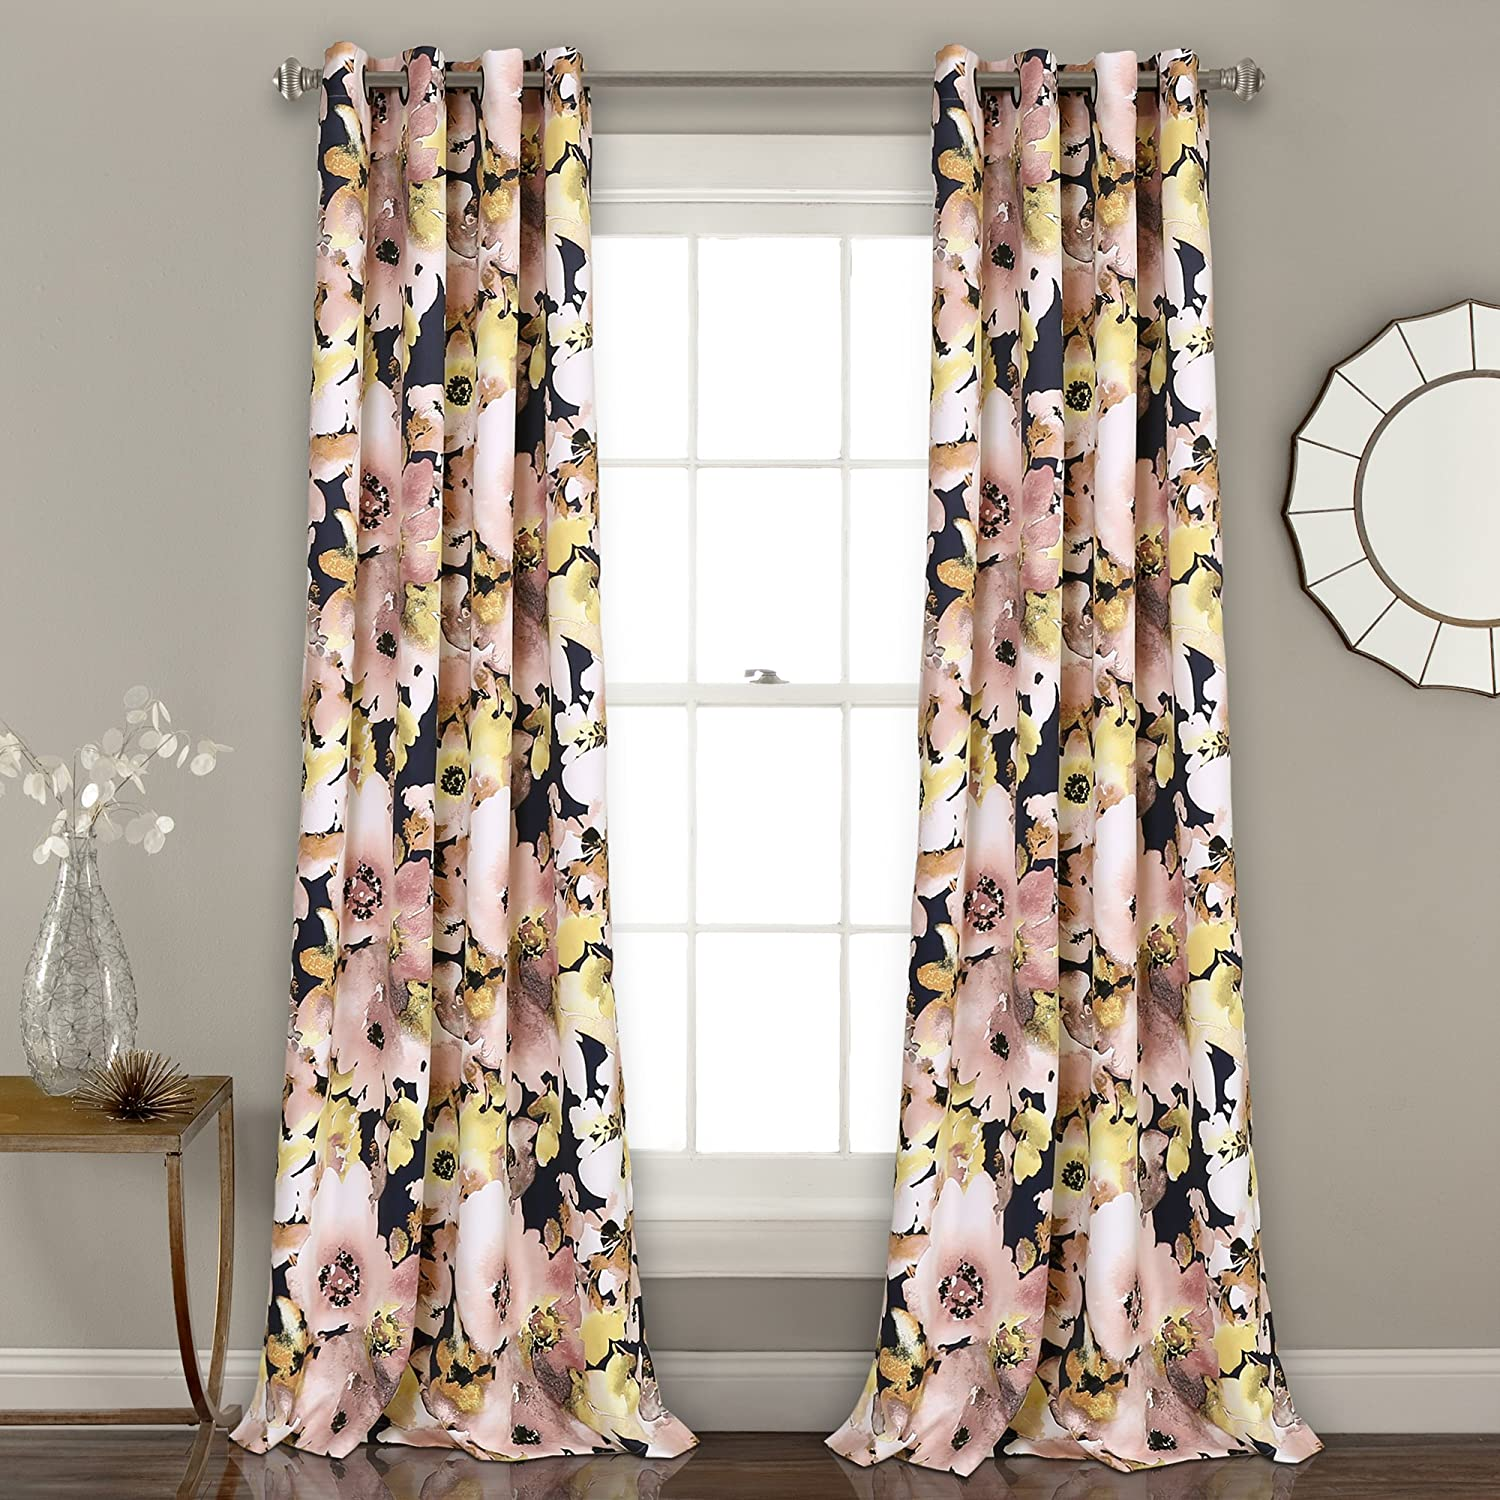 "Lush Decor 16T002398 Floral Watercolor Room Darkening Window Curtain Panel Pair, 84"" x 52"", Navy"